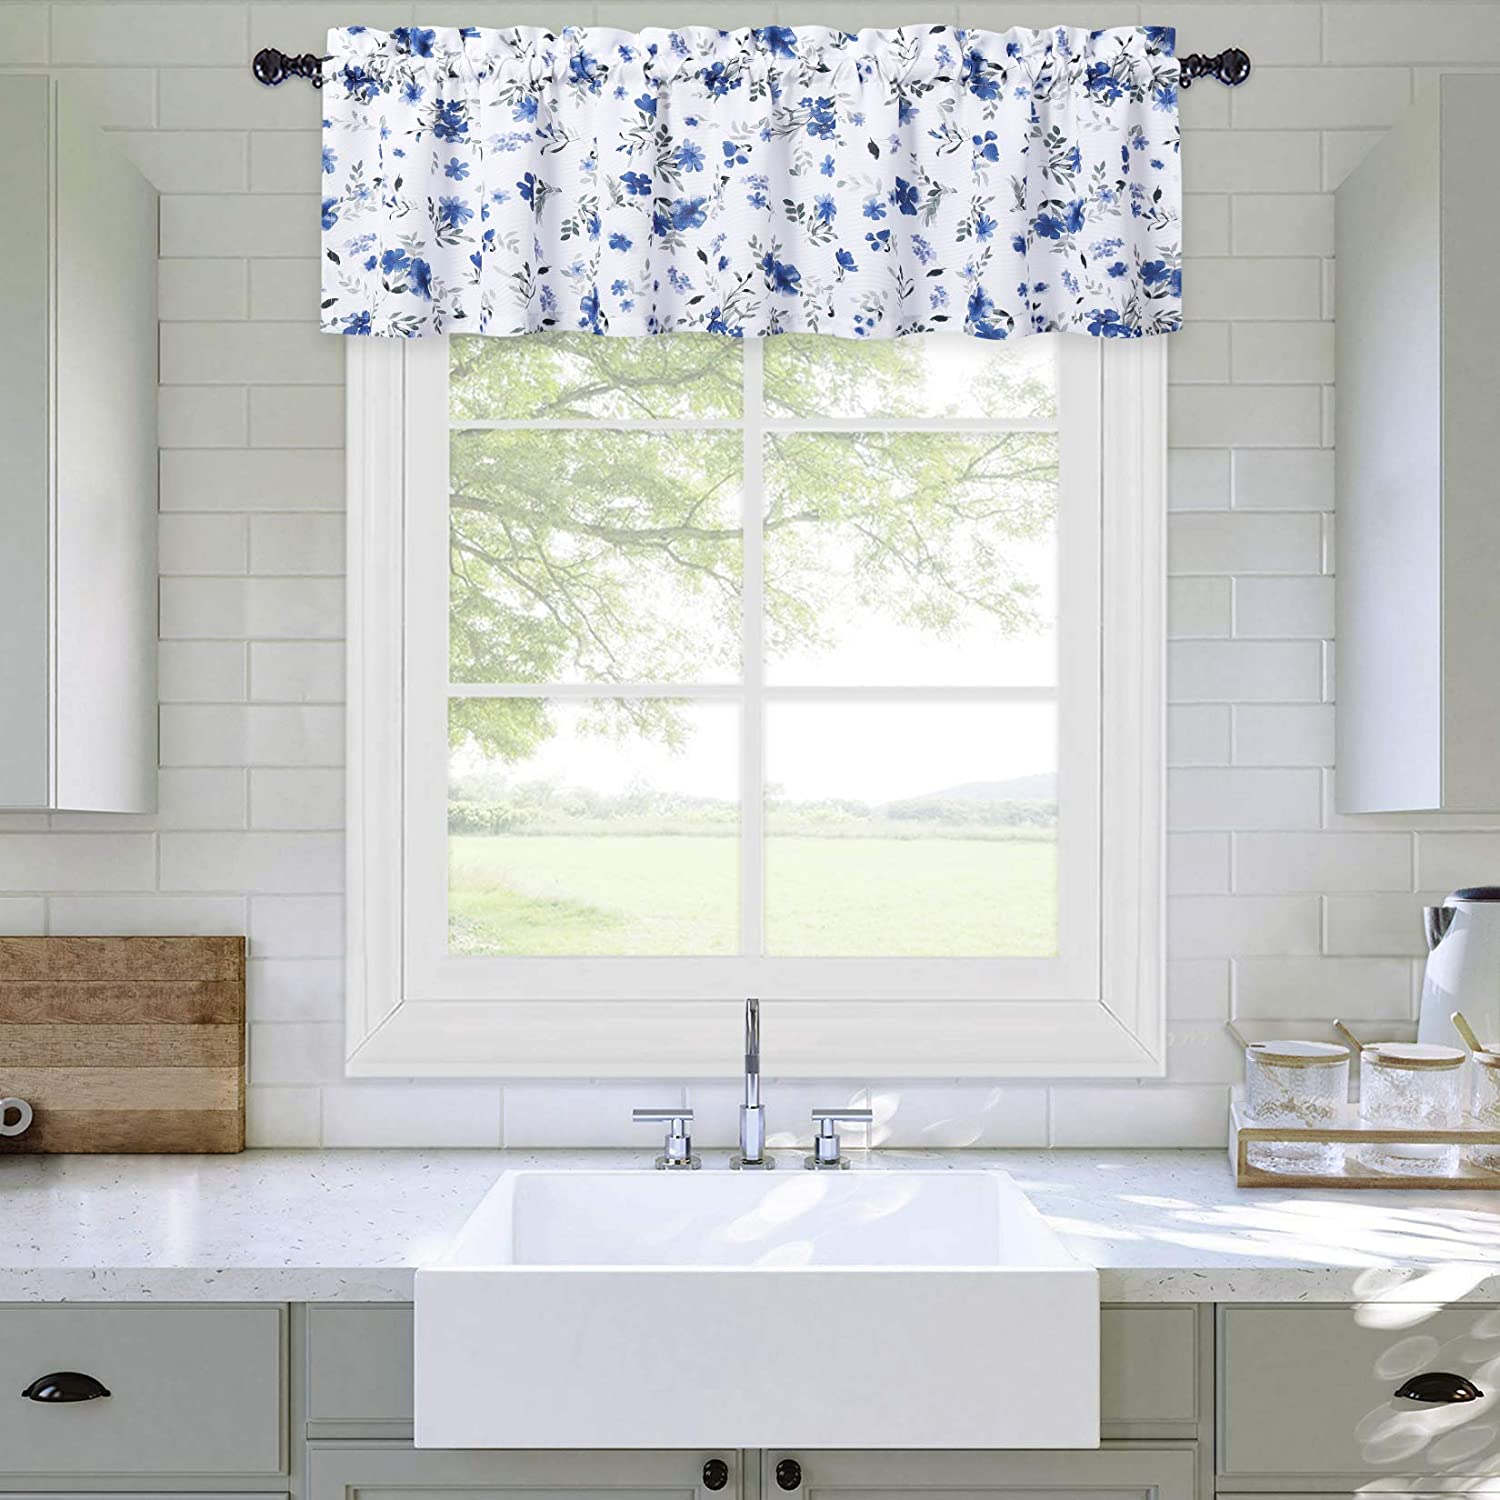 Haperlare Navy Blue Valance Curtain for Bathroom, FloralValance Curtains for Windows Thick Watercolor Flower Leaf Pattern Farmhouse Kitchen Valance Curtain Cafe Curtains, 54